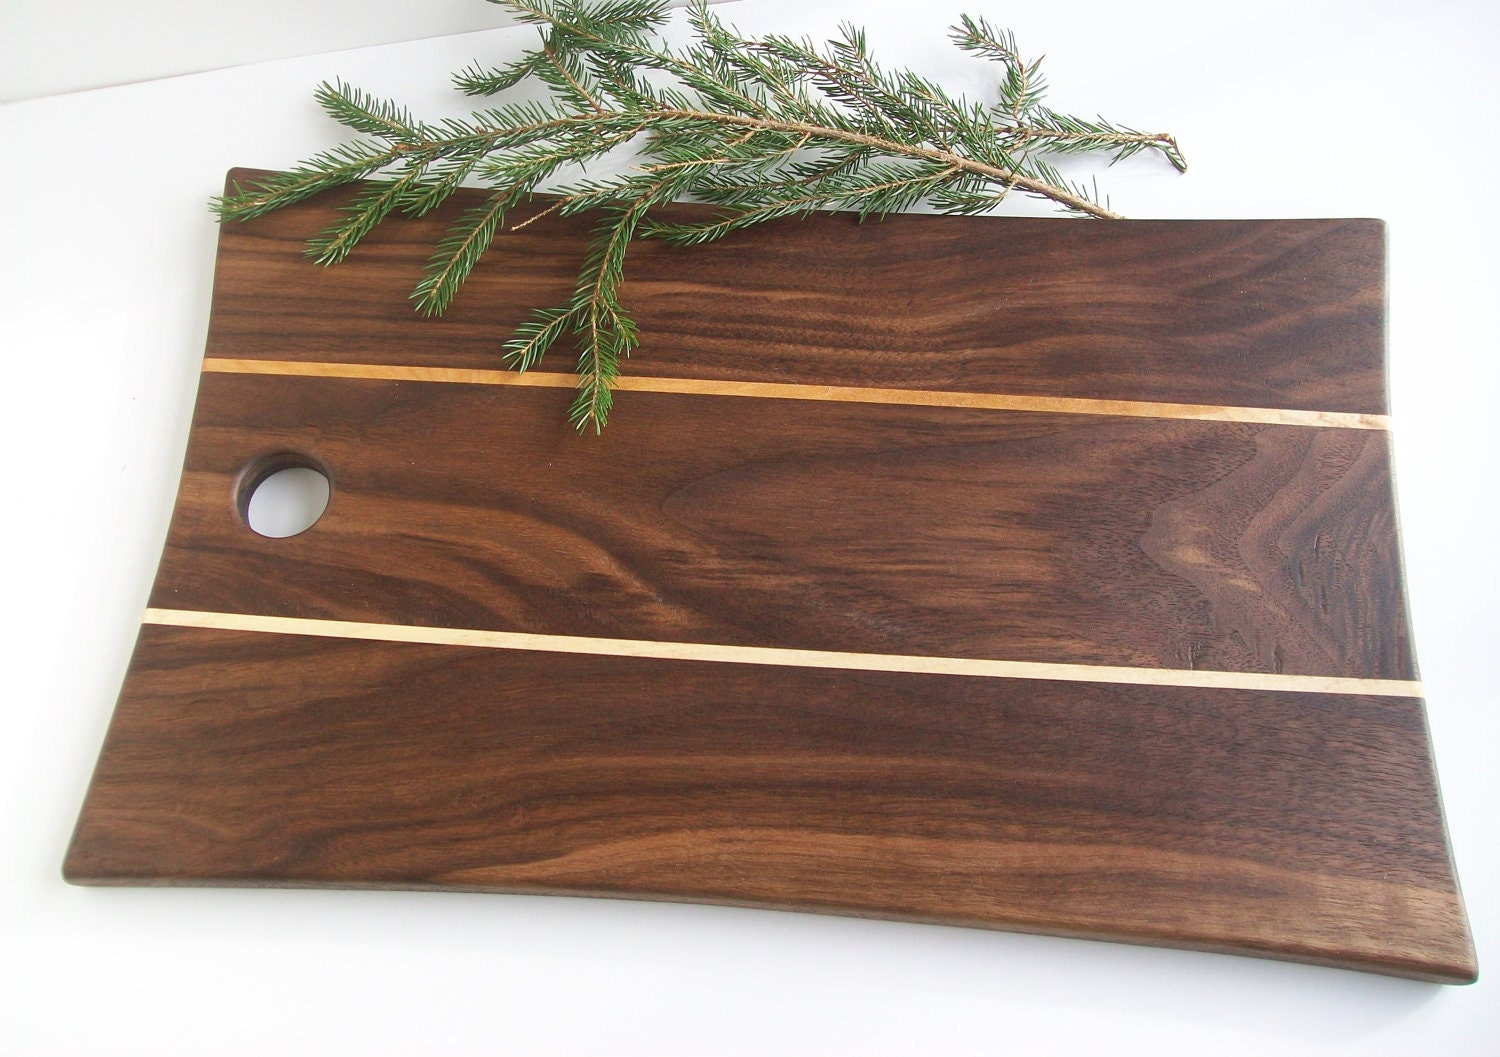 Cutting Board Chopping Board Bread Board Wood by DouglasMartin